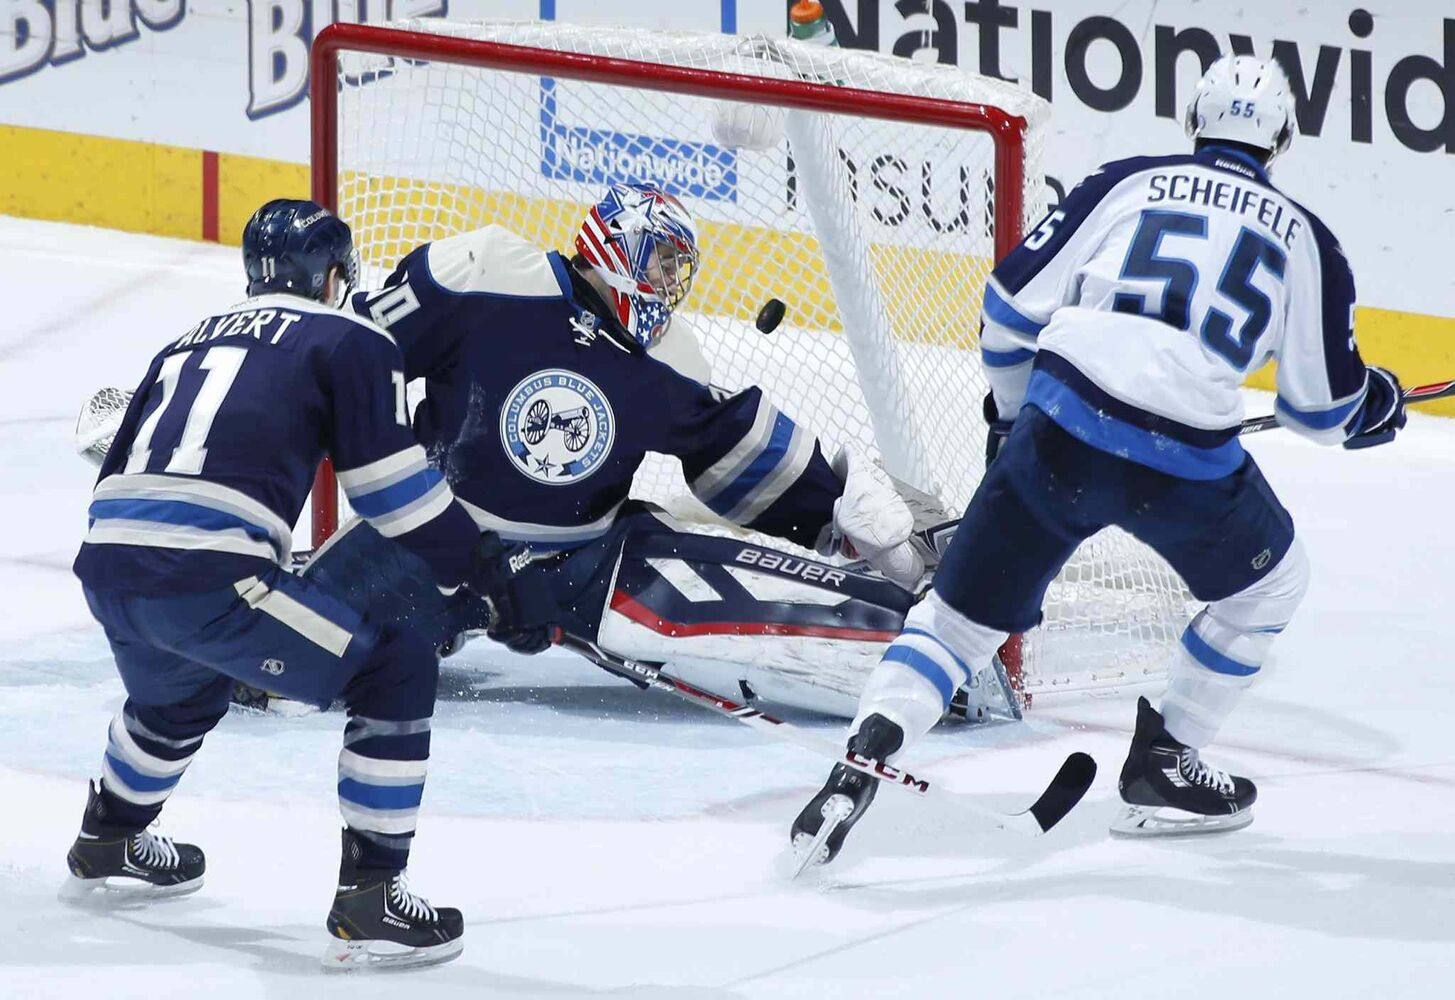 Jets rookie centre Mark Scheifele opens the scoring against Blue Jackets goalie Mike McKenna, Monday night.